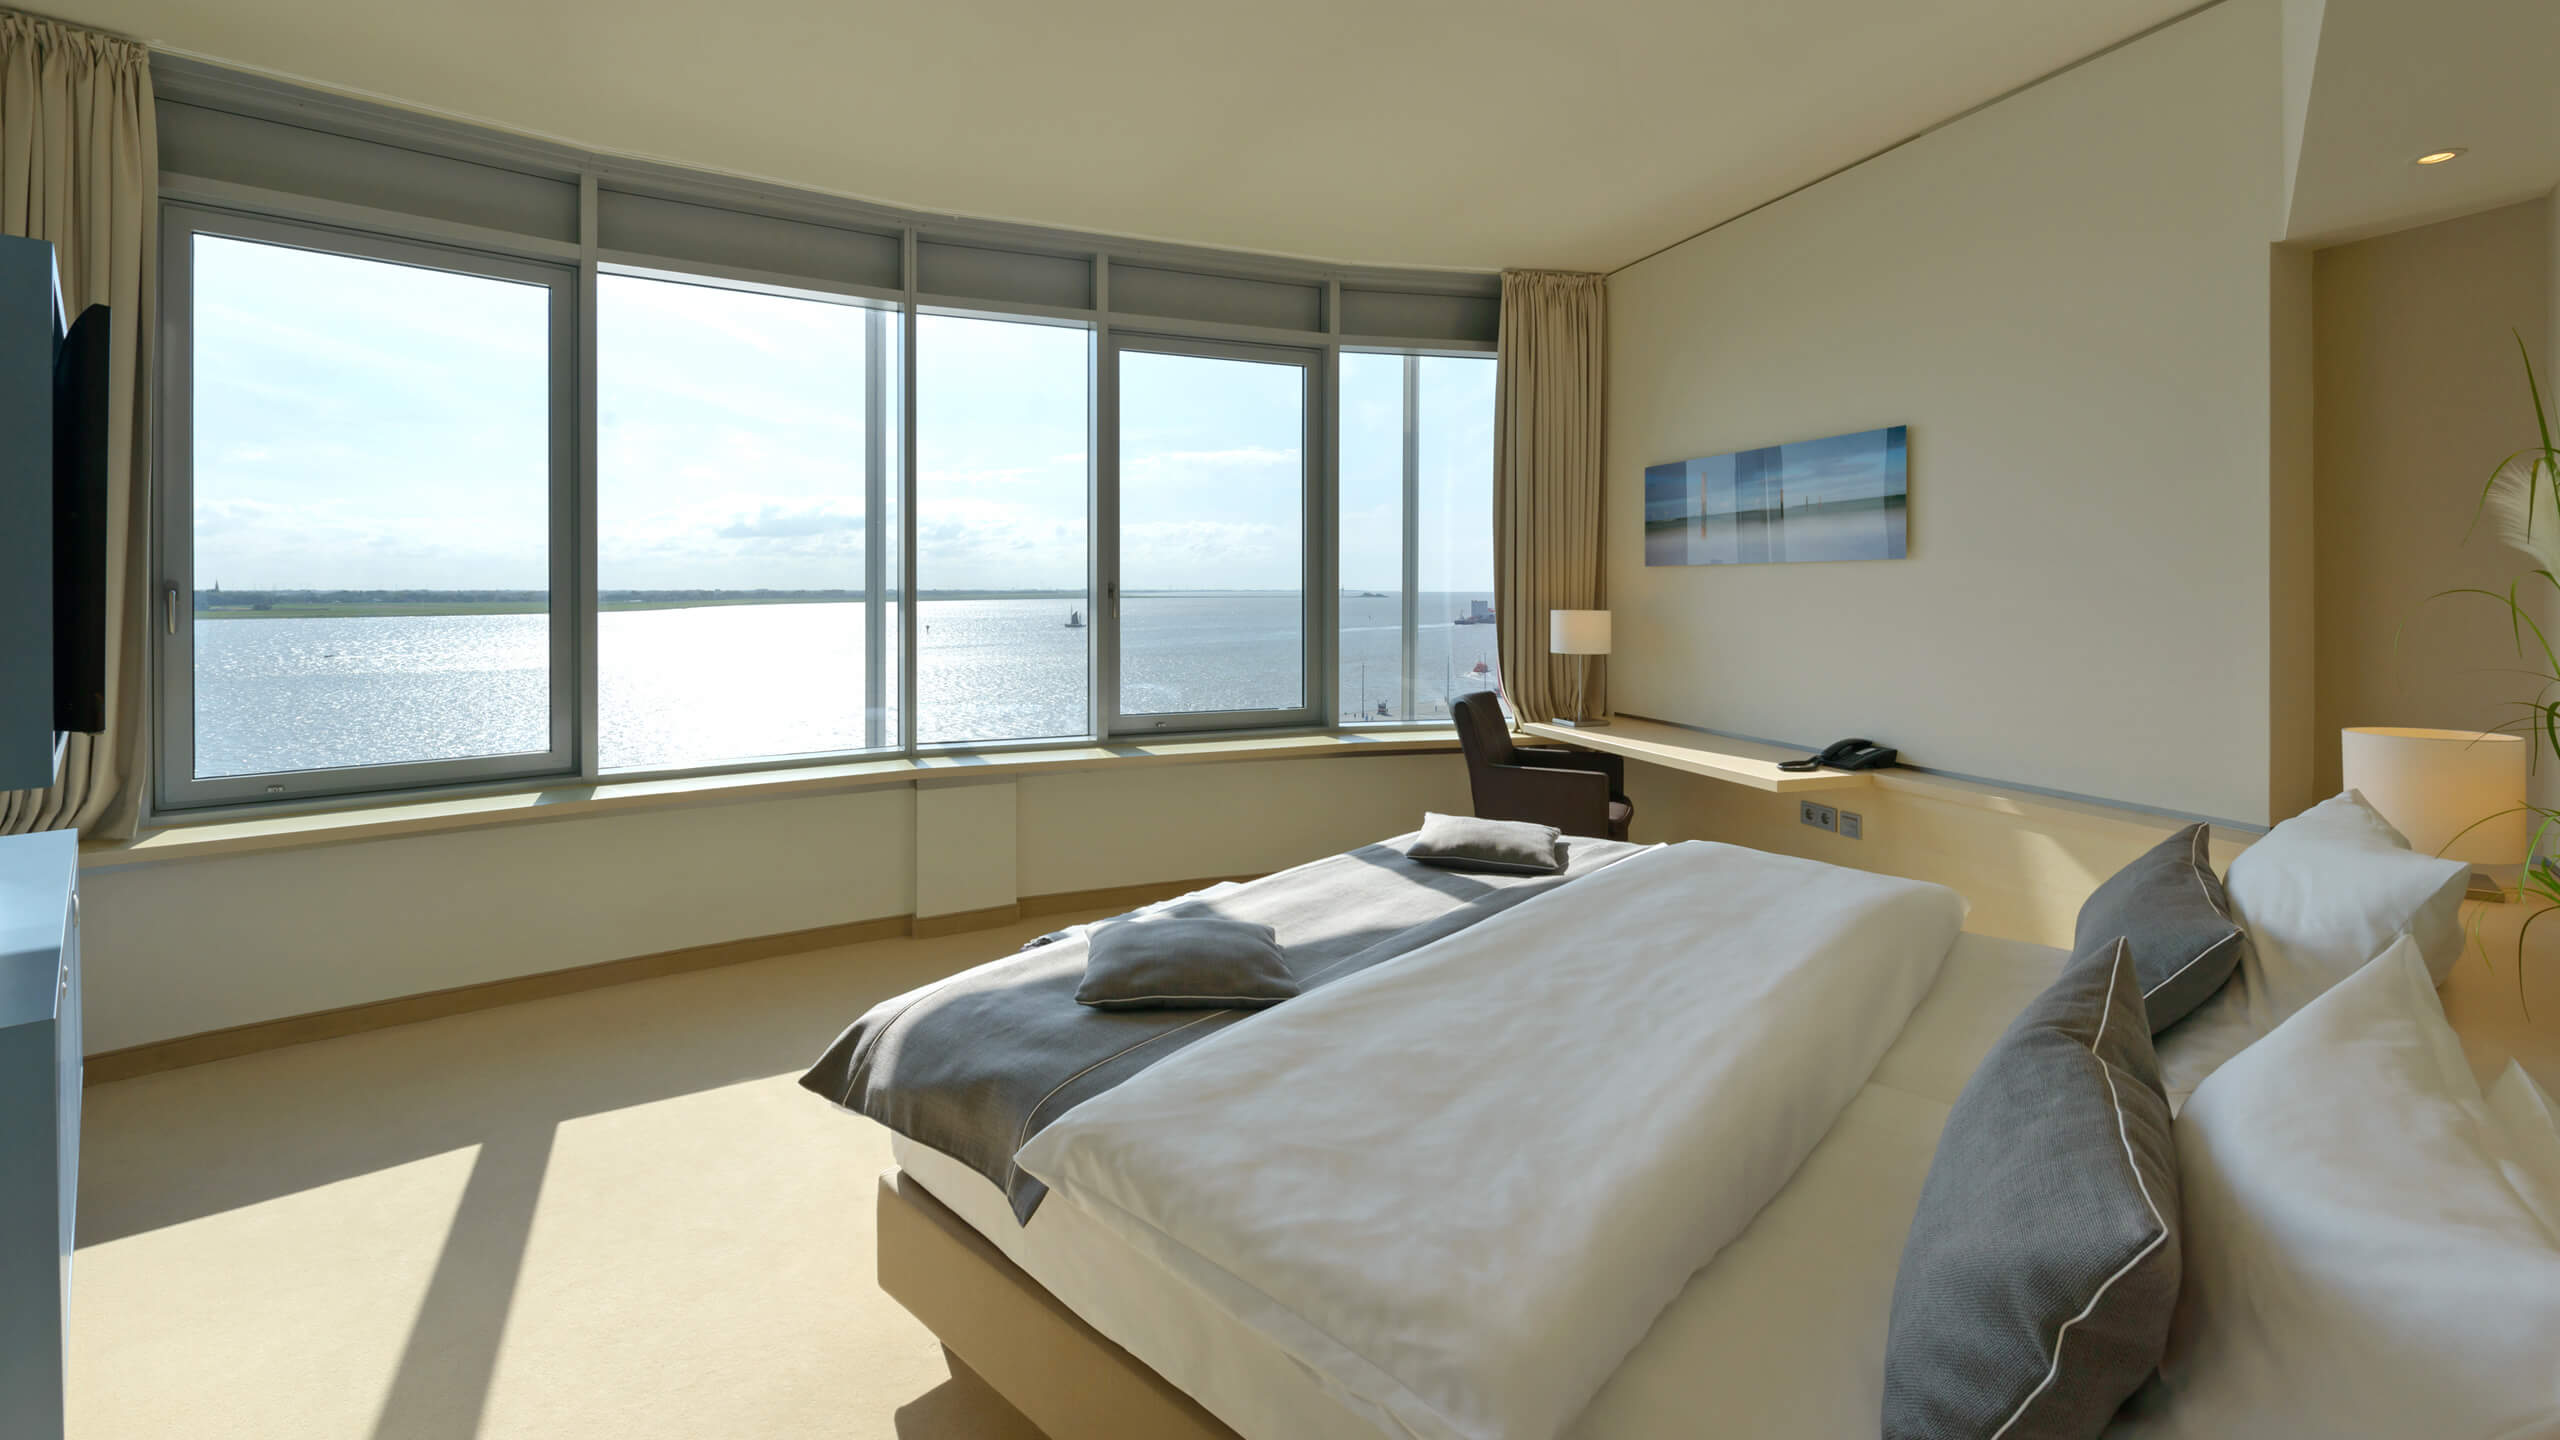 Interior view of a Suite in the ATLANTIC Hotel SAIL City in Bremerhaven with an amazing view over the Weser